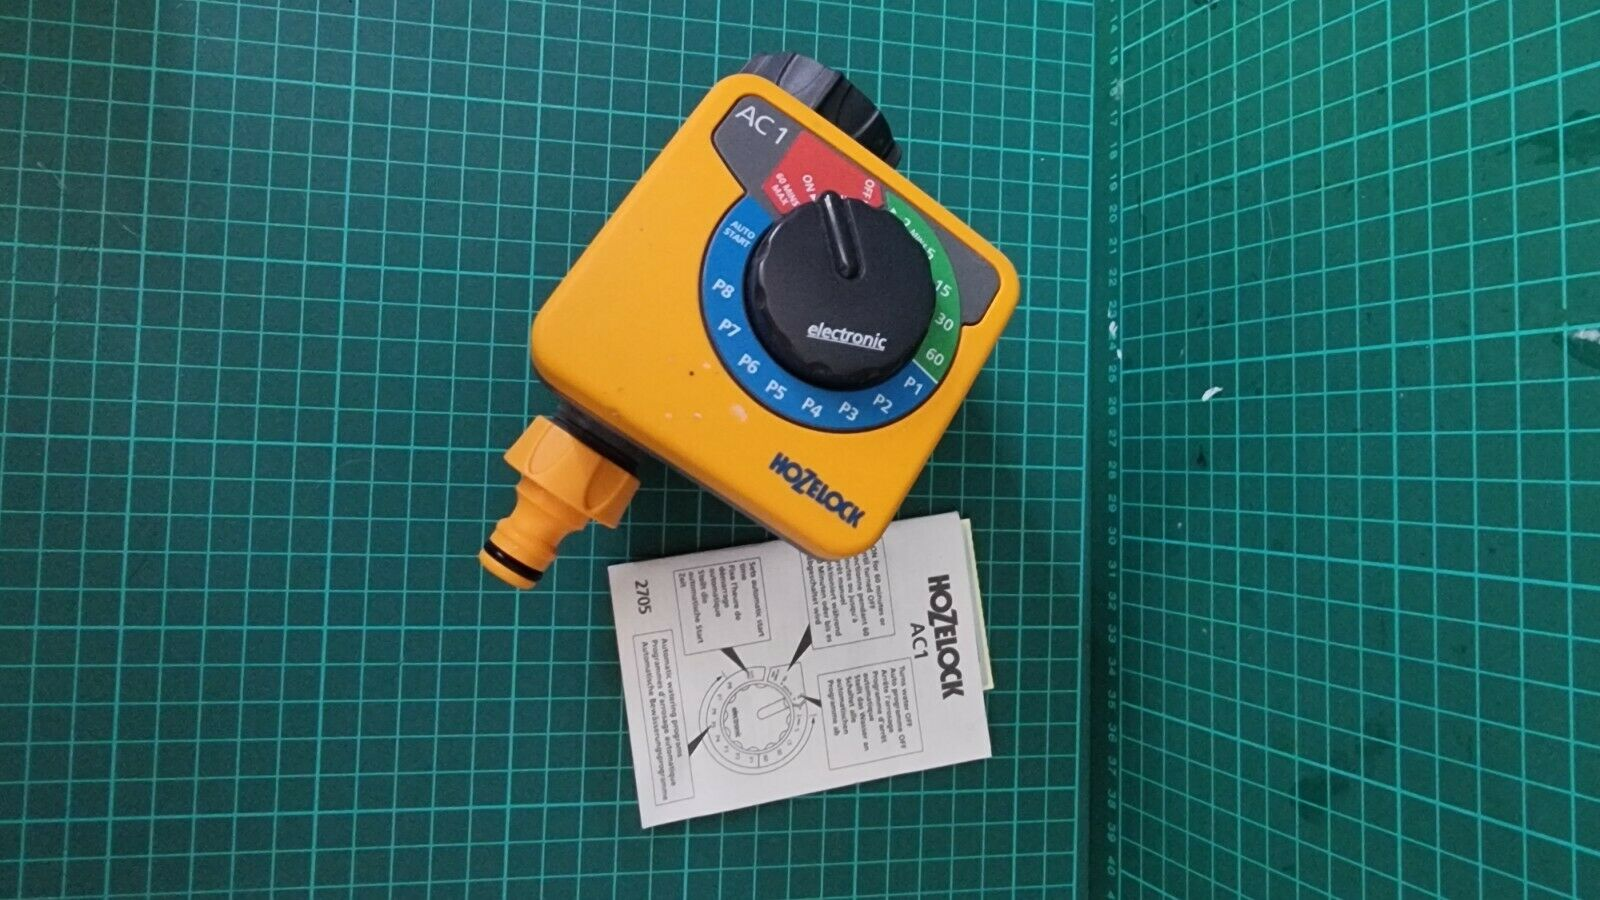 Hozelock AC1 Electronic Water Computer - Never Used